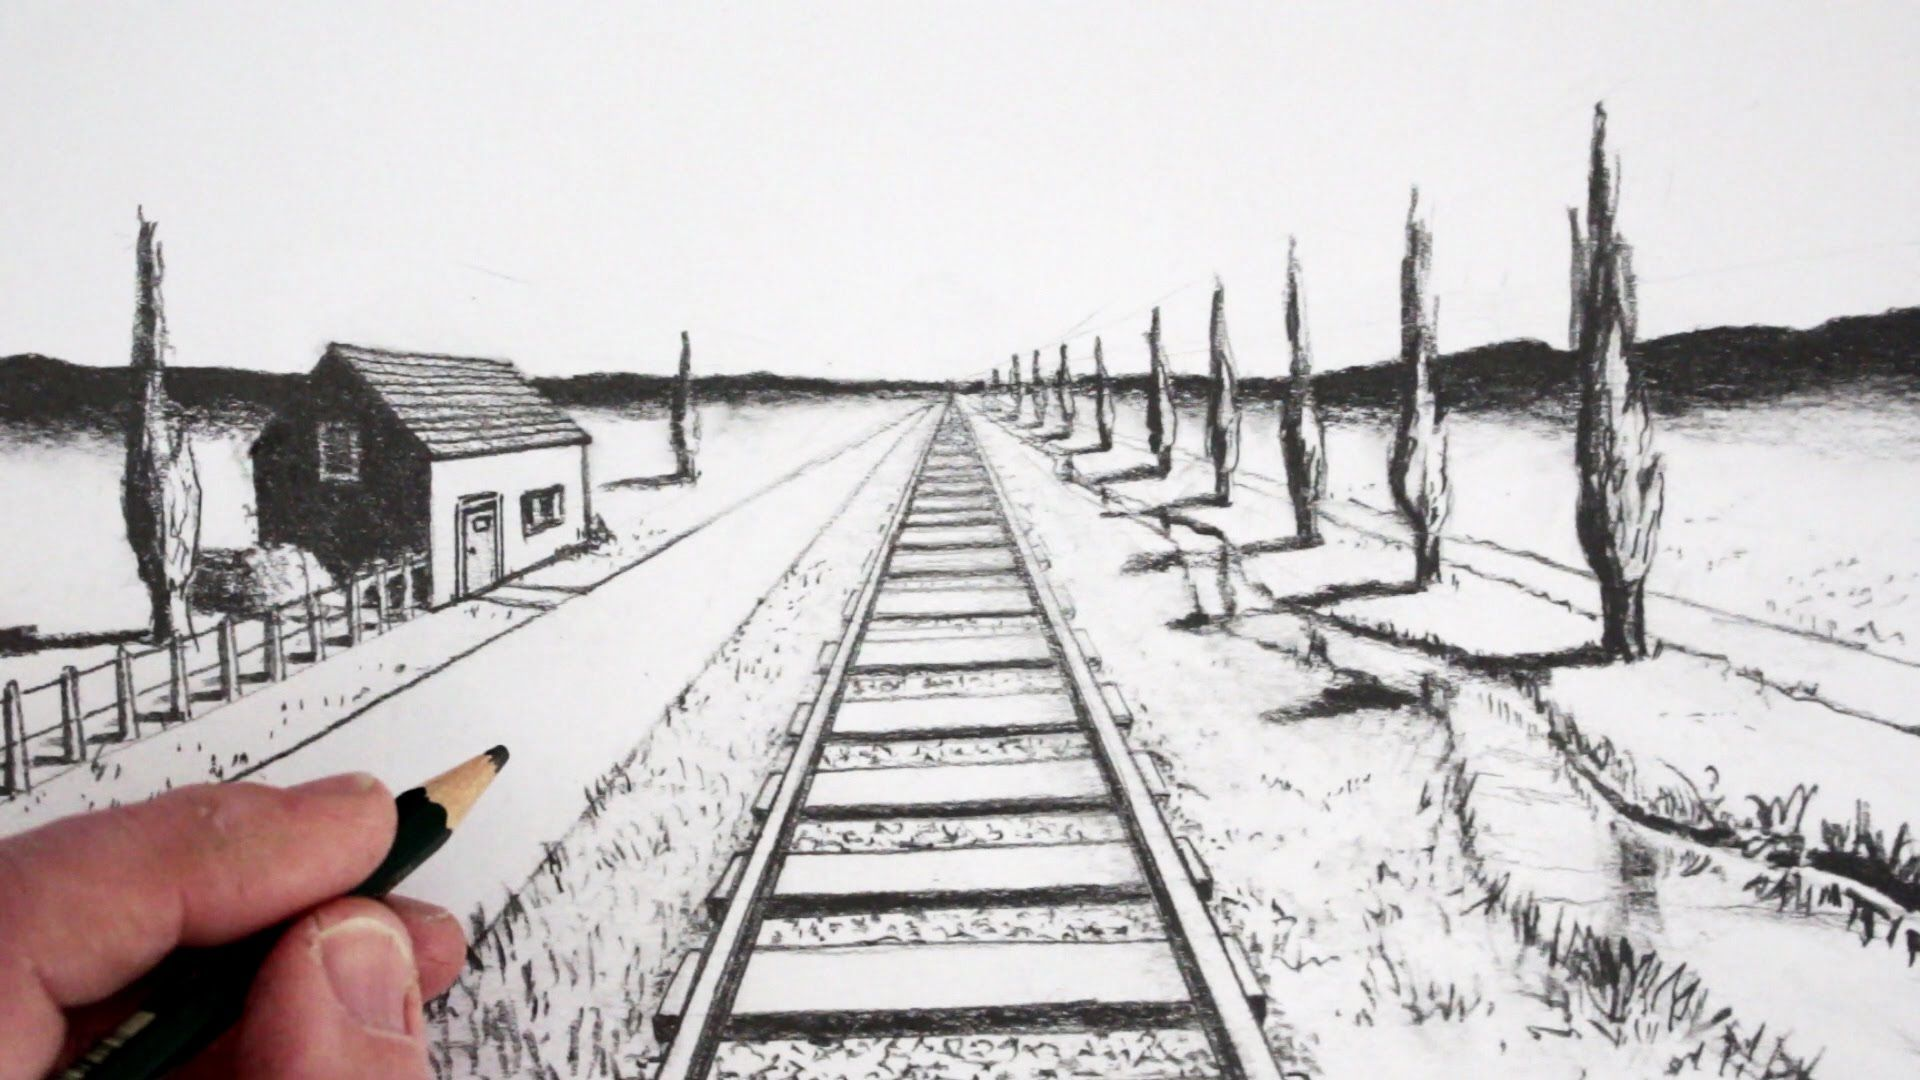 Learn How To Draw In One Point Perspective In This Simple